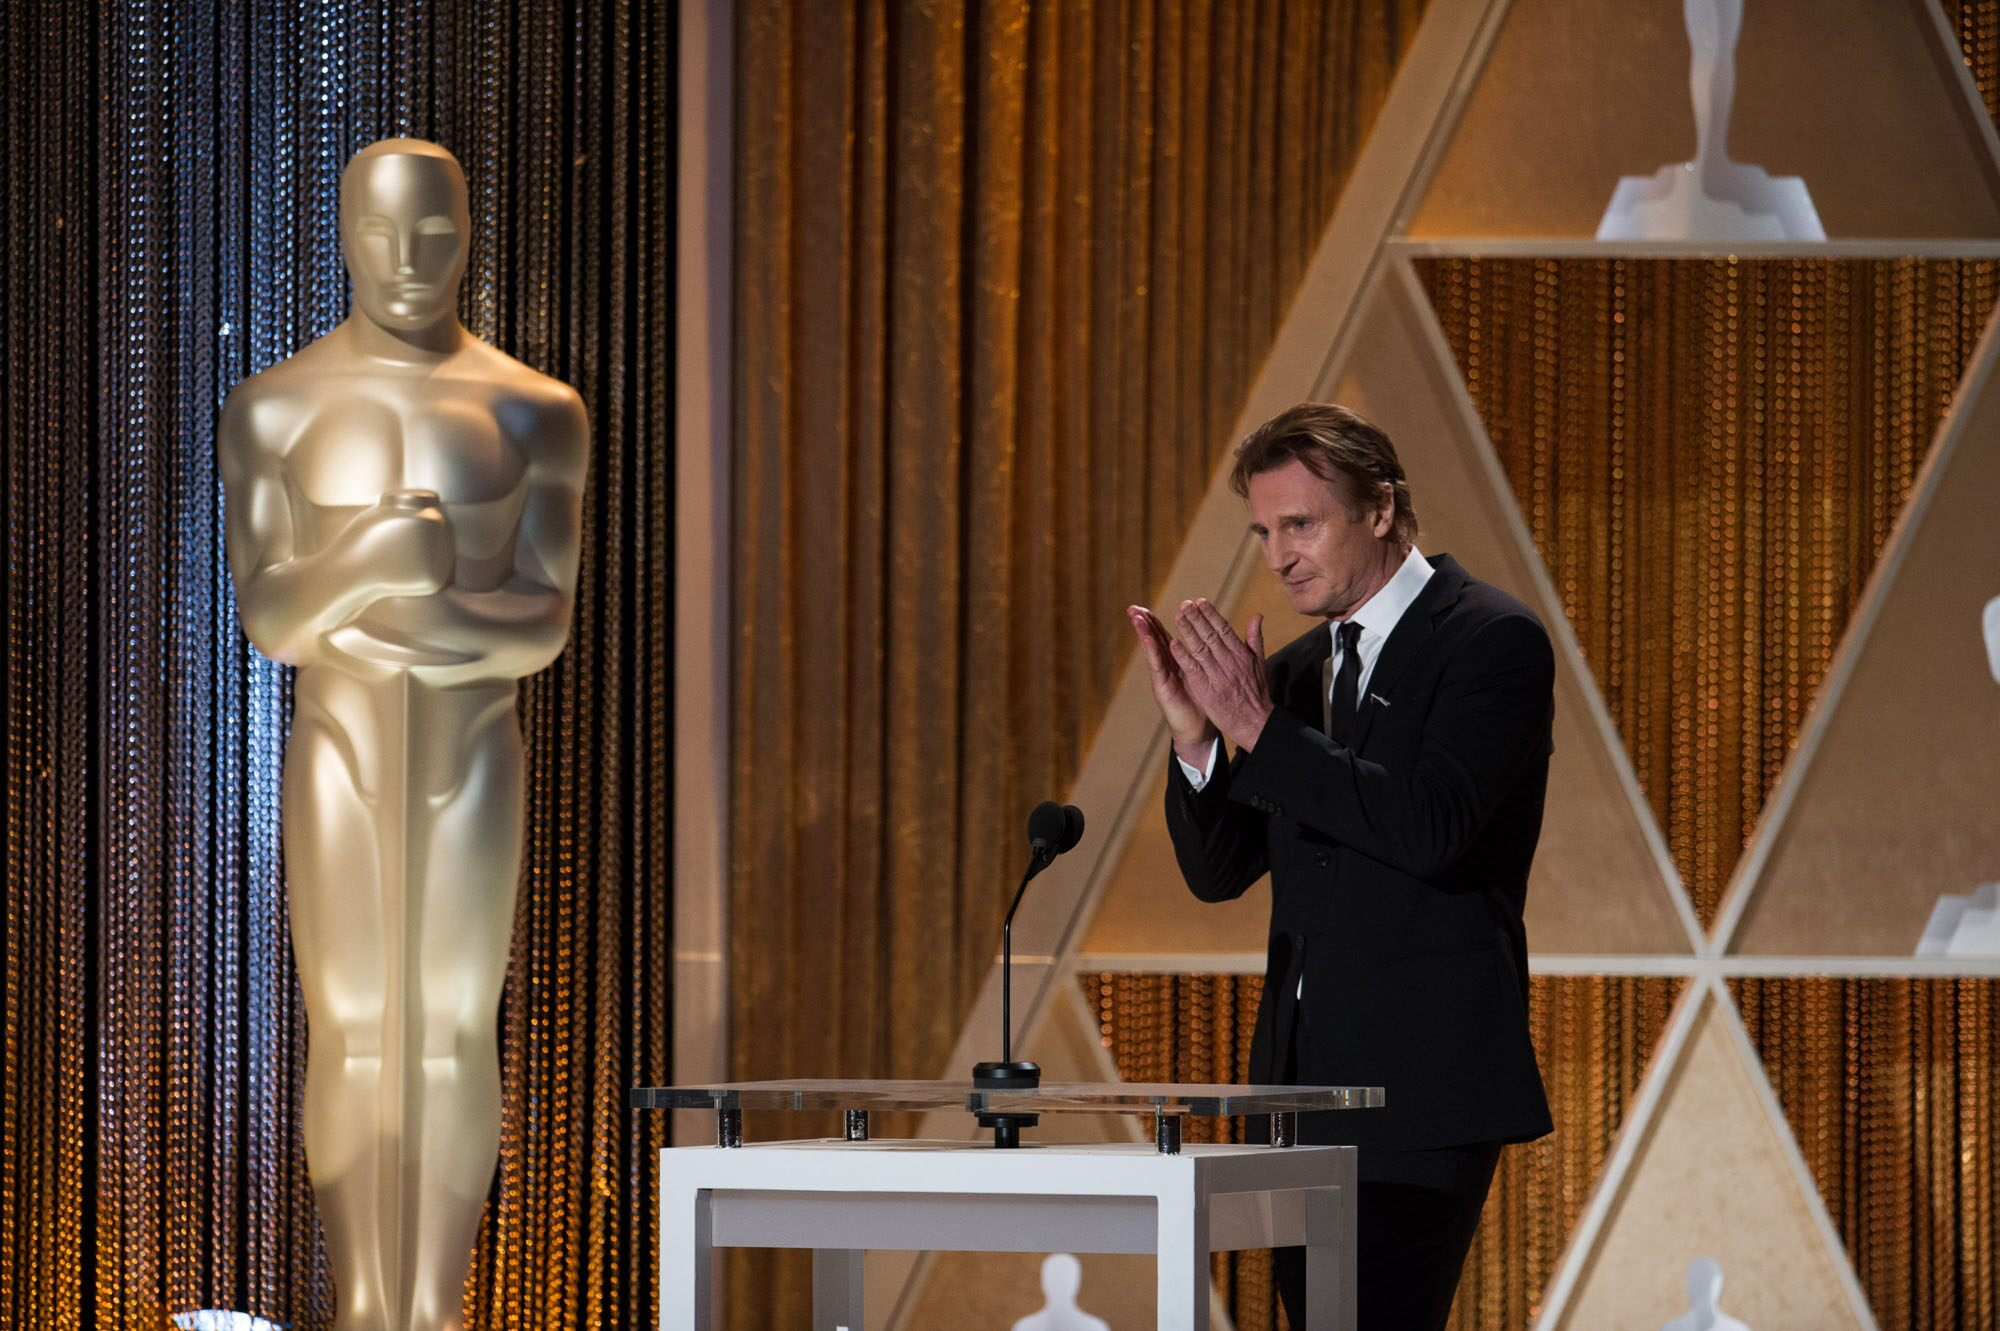 Actor Liam Neeson speaks as part of the award presentation to Honorary Award recipient Maureen O'Hara during the 2014 Governors Awards